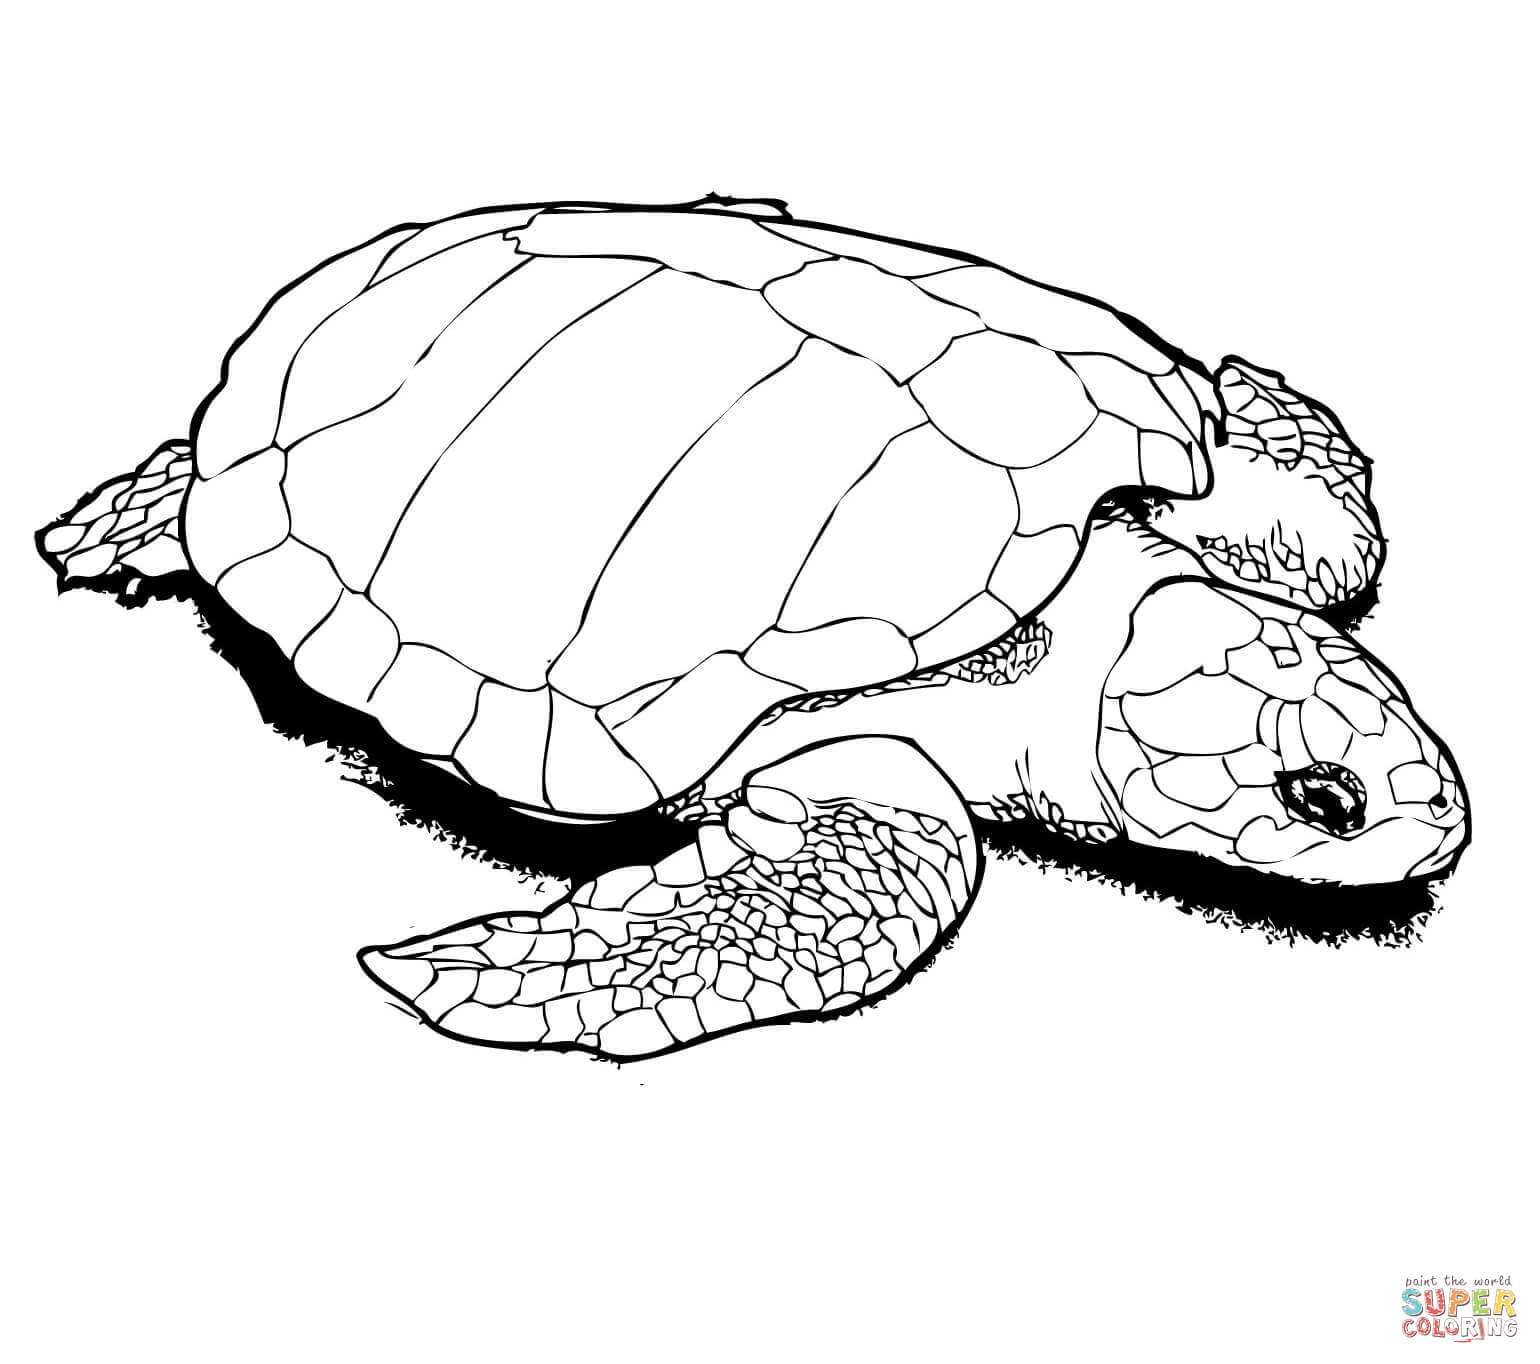 1540x1364 Soar Coloring Page Of A Turtle Turtles Pages F